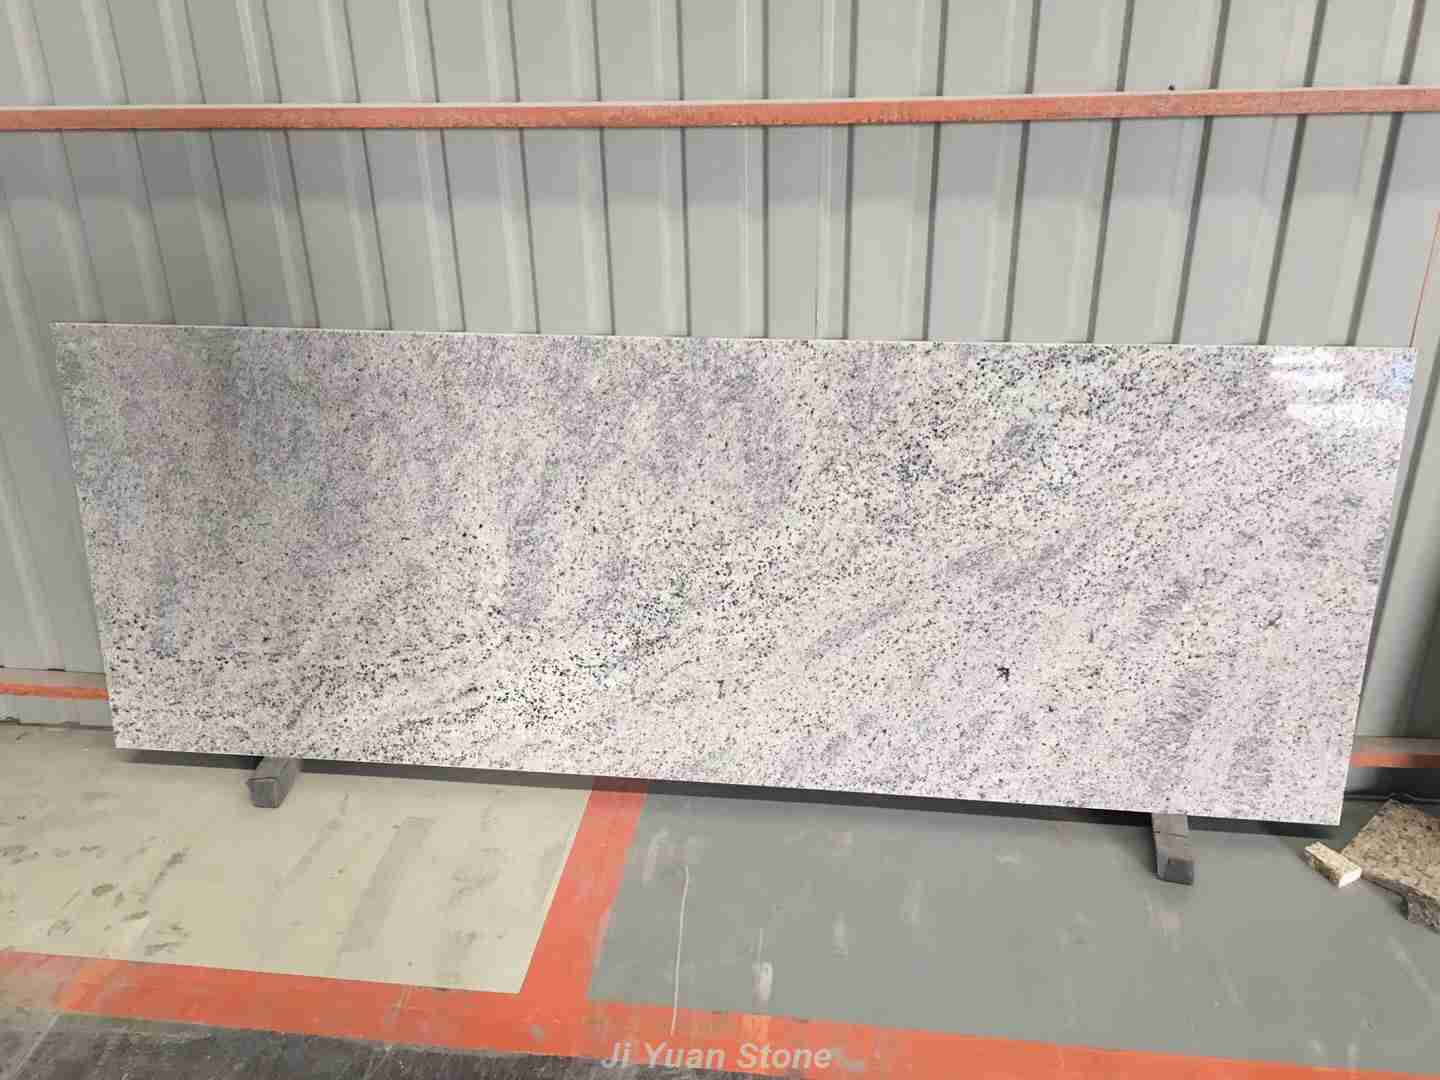 Cashmere cream granite,kashmir gold granite,new granite countertops,white marble granite,granite kitchen countertops price,brazilian granite,white carrara granite